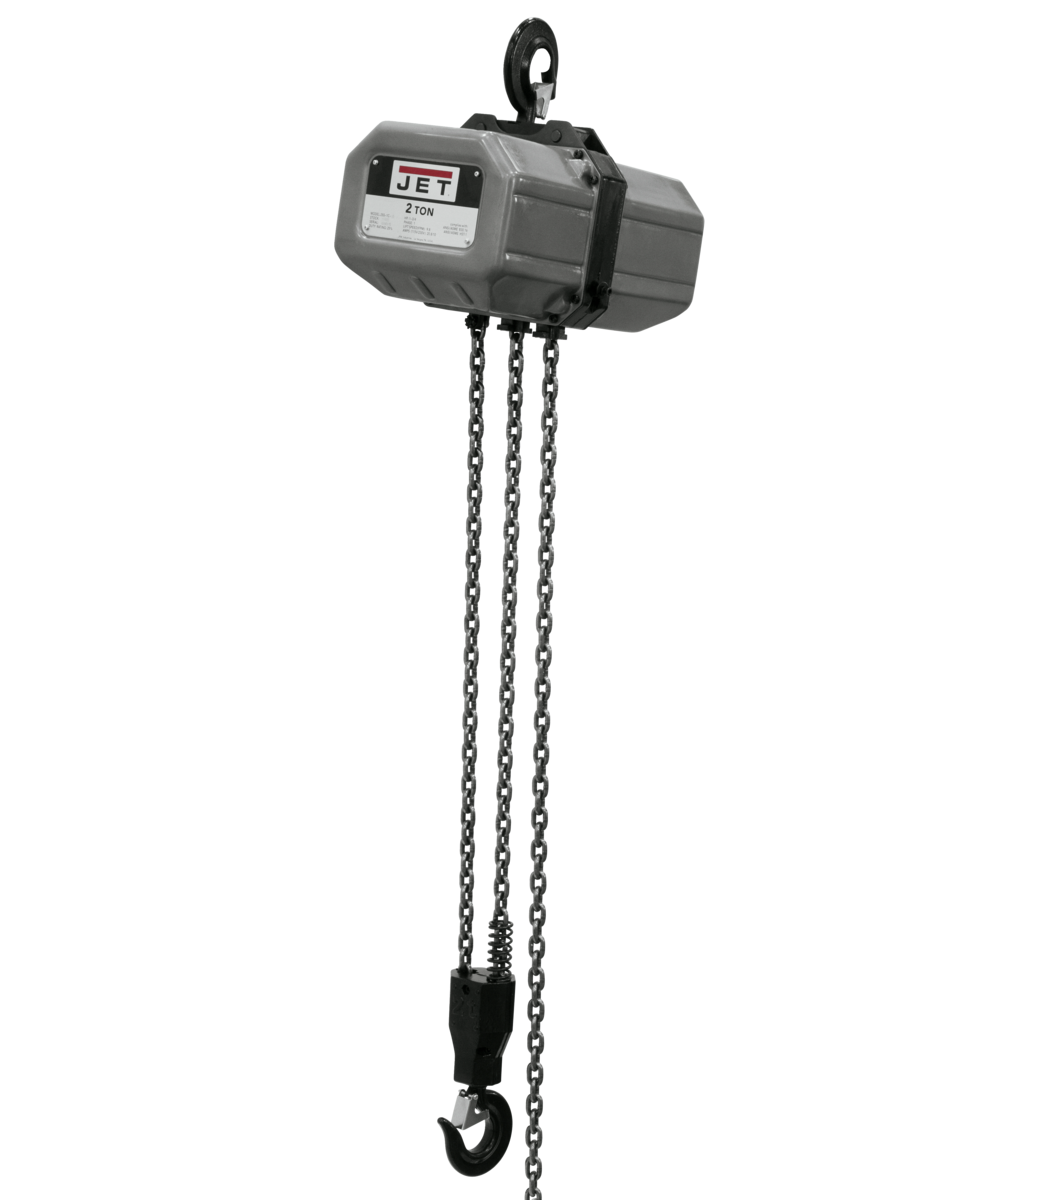 2SS-1C-15, 2-Ton Electric Chain Hoist 1-Phase 15' Lift